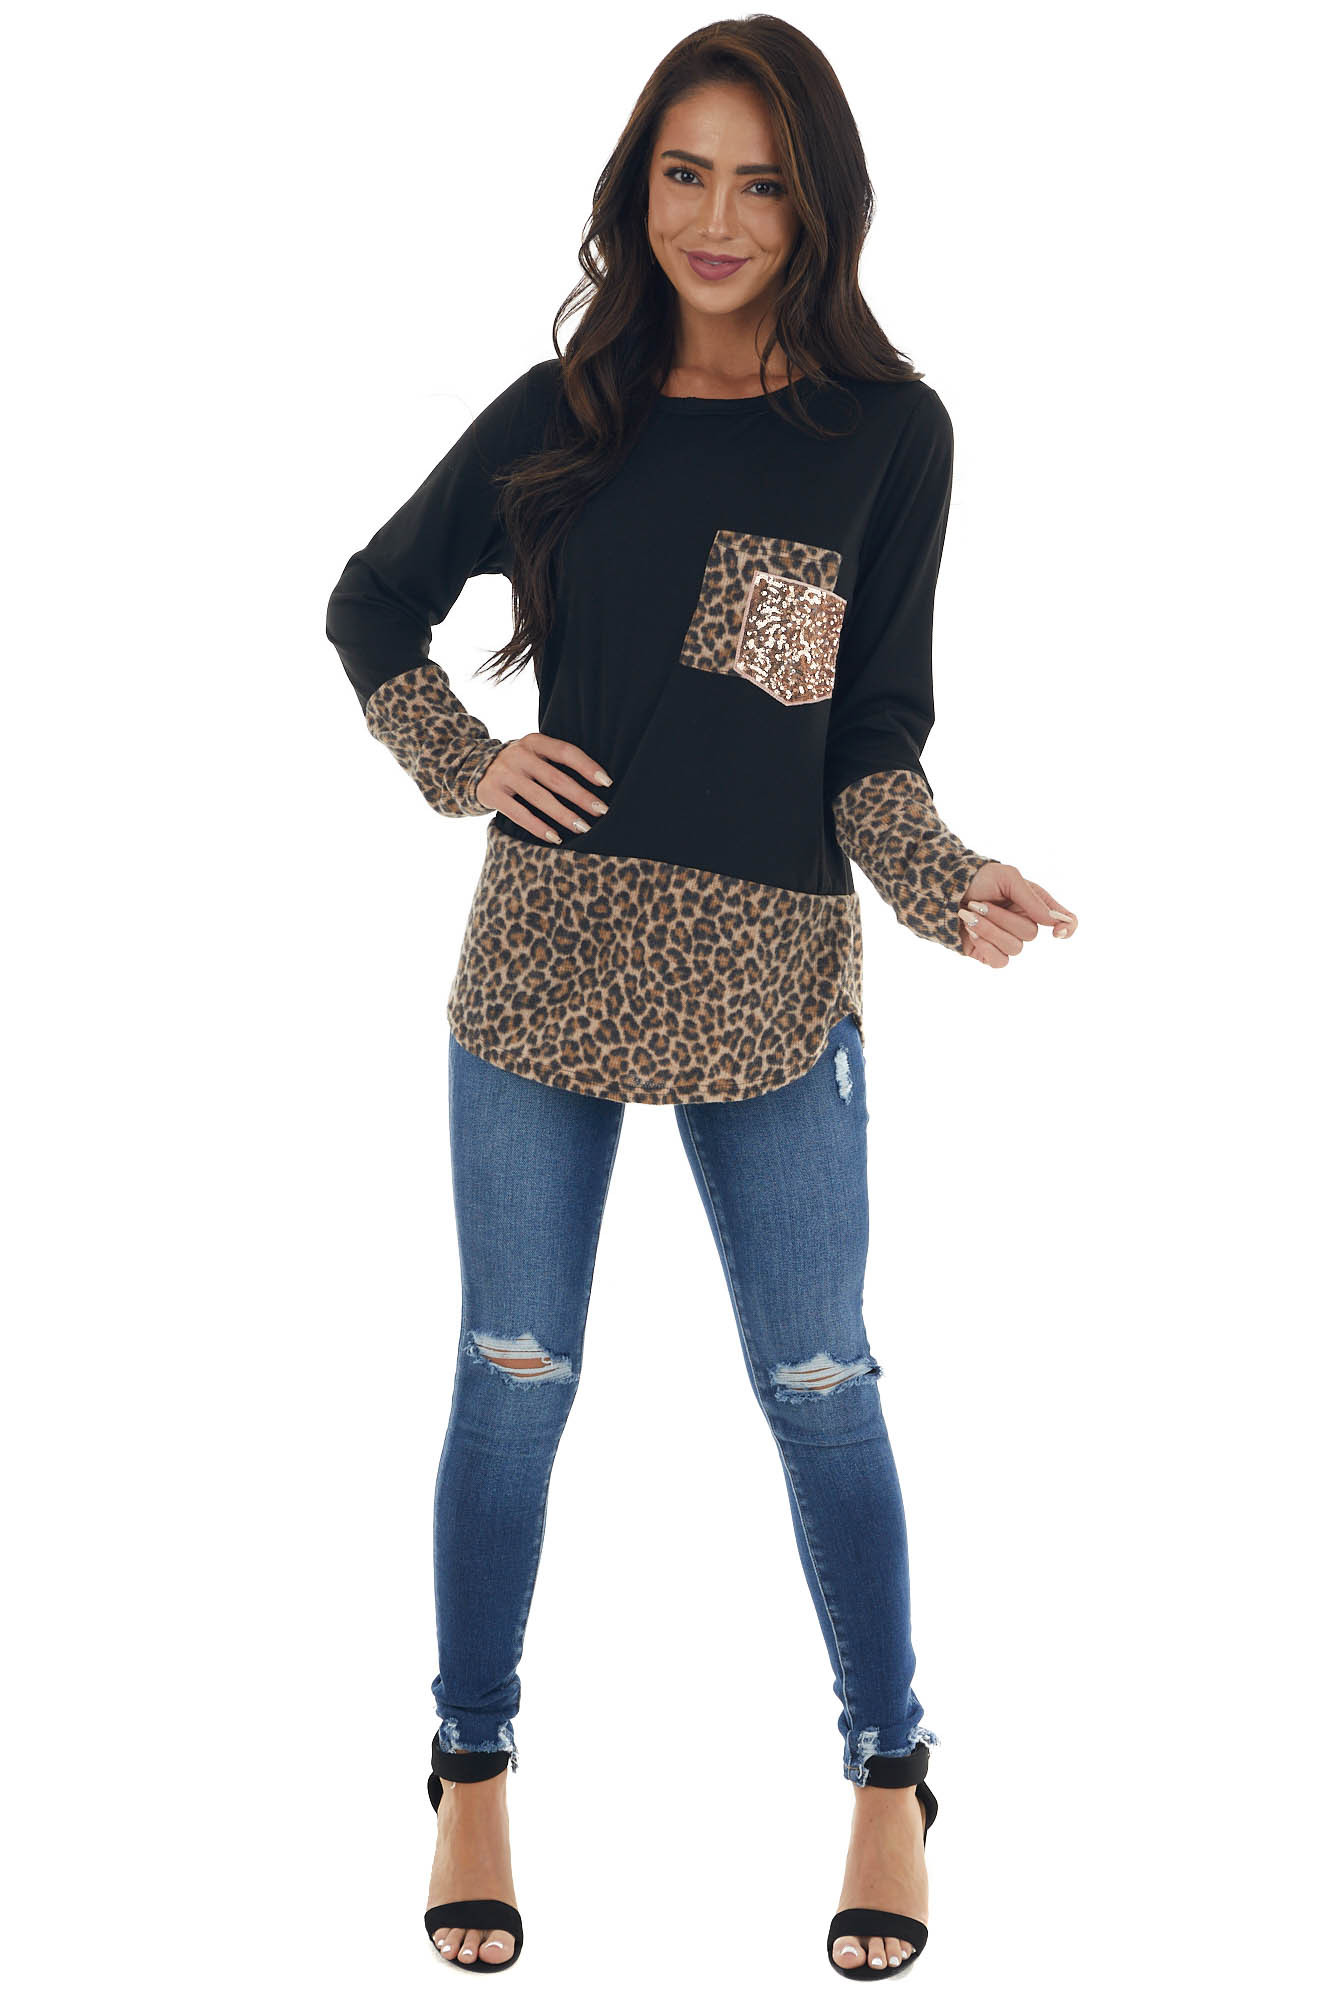 Black Long Sleeve Top with Leopard Print and Sequin Detail